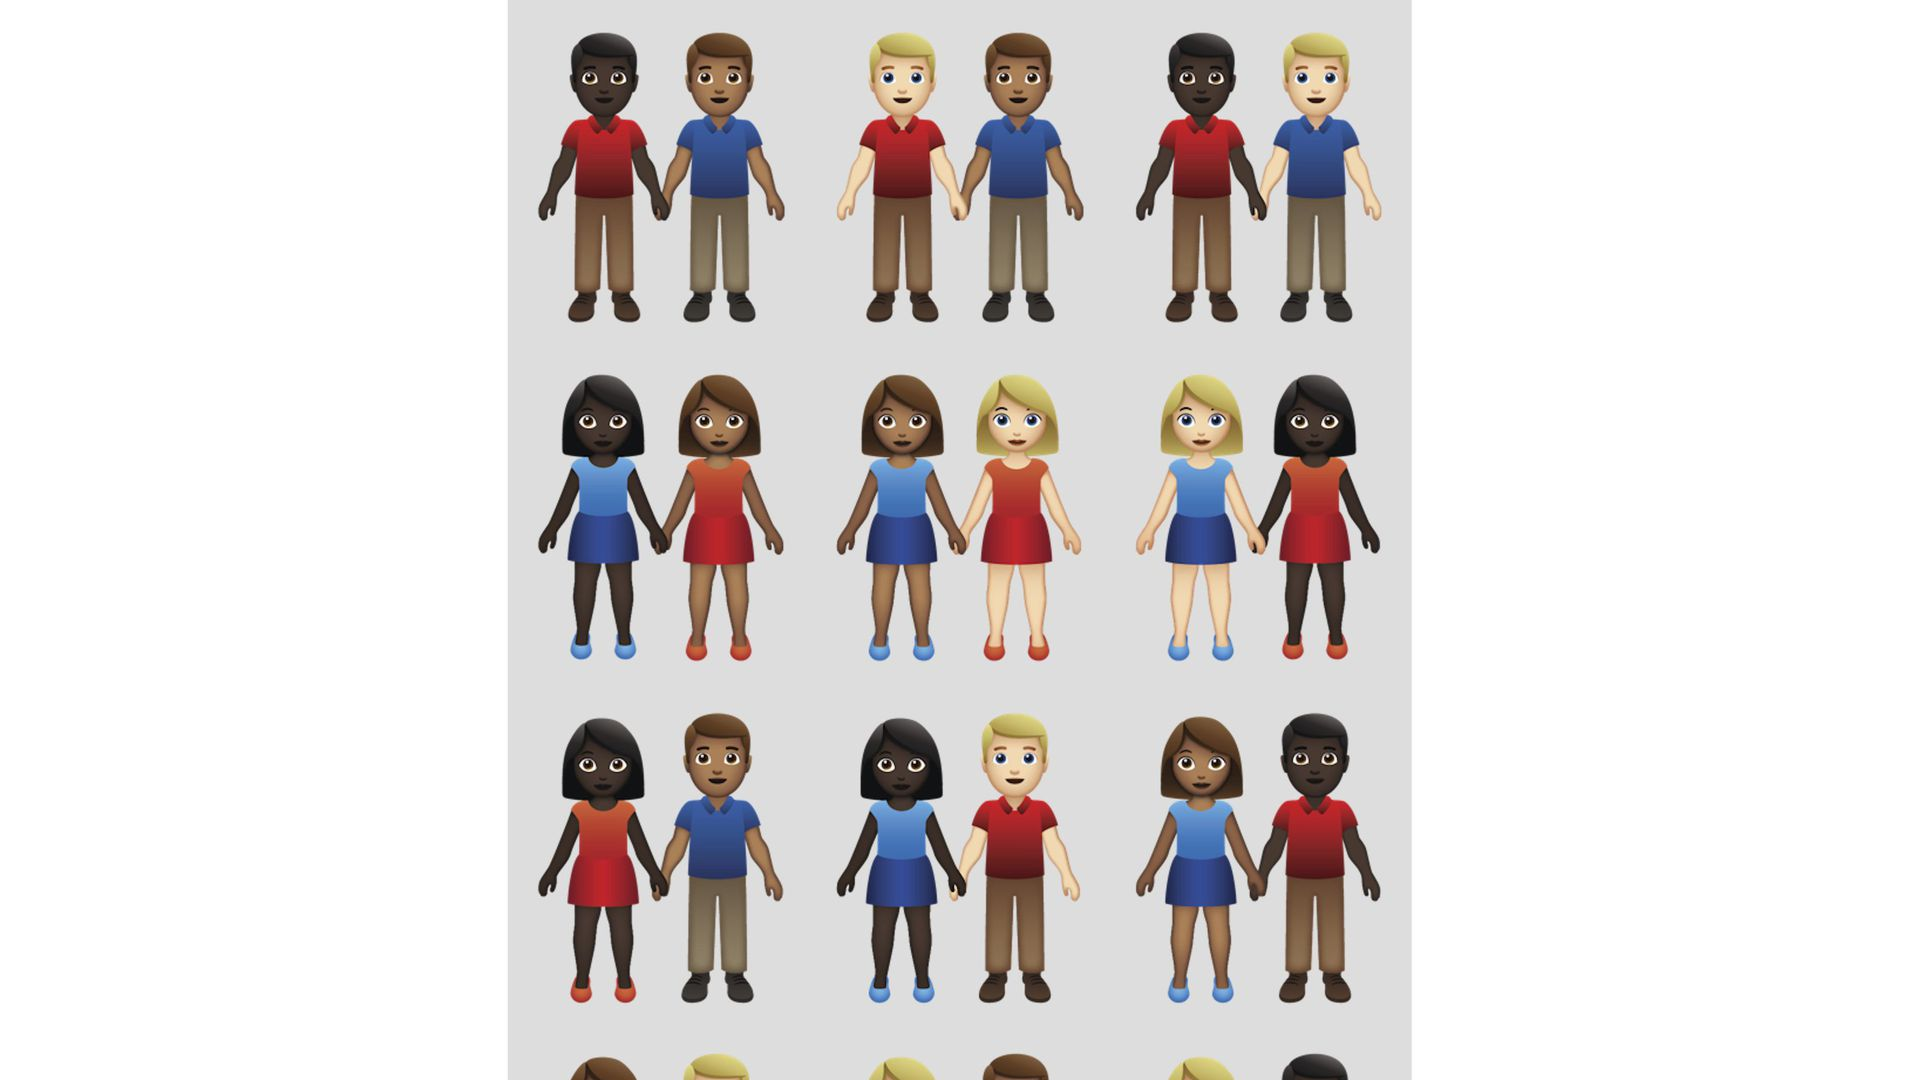 emojis couples of different skin tones holding hands.